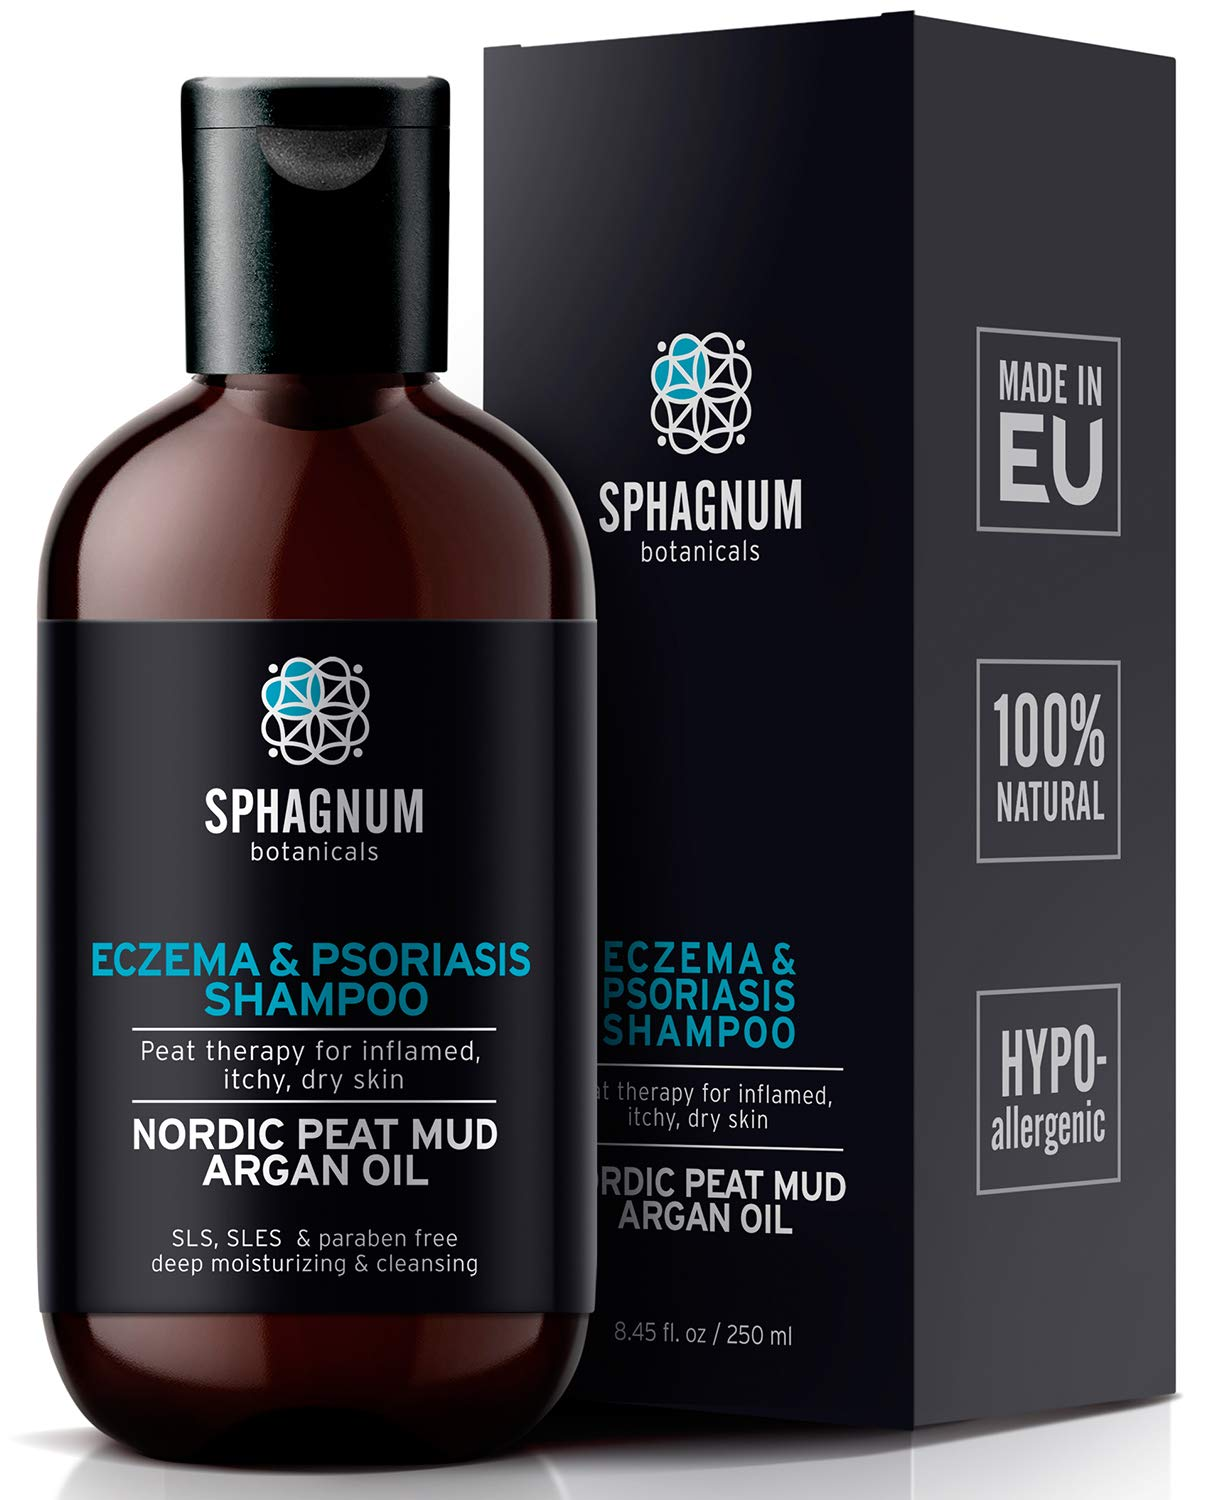 Natural Eczema and Psoriasis Shampoo - Peat Mud Treatment 100% Free from Cancerous Coal Tar. Sulfate Free, Itchy Scalp Relief, Anti Dandruff & Dermatitis. Deep Moisturizing & Cleansing With Argan Oil... by Sphagnum Botanicals